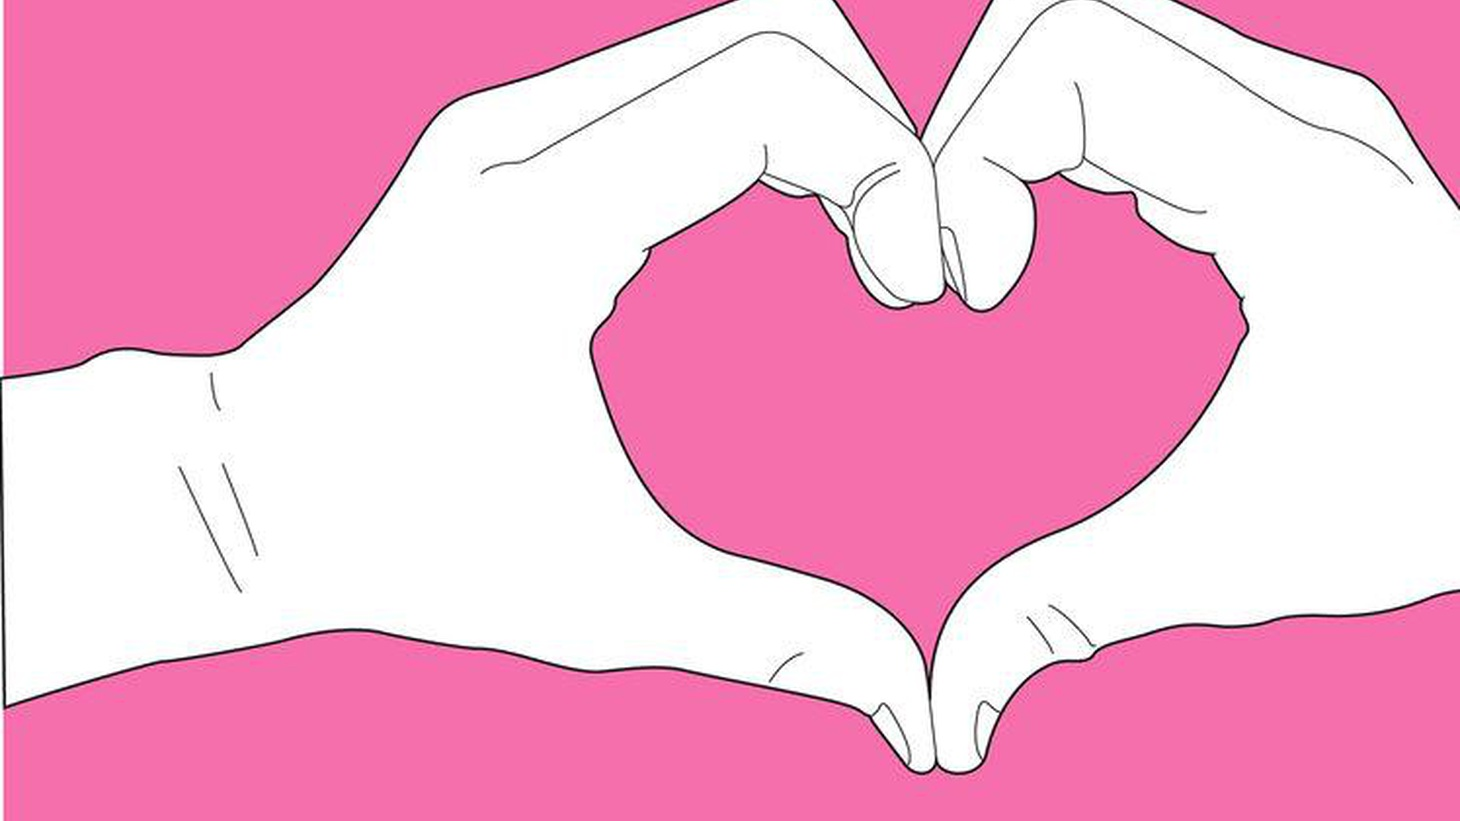 Love is instinctive and essential. But what is it that brings certain people together? TED speakers examine the mystery of connection and relationships.